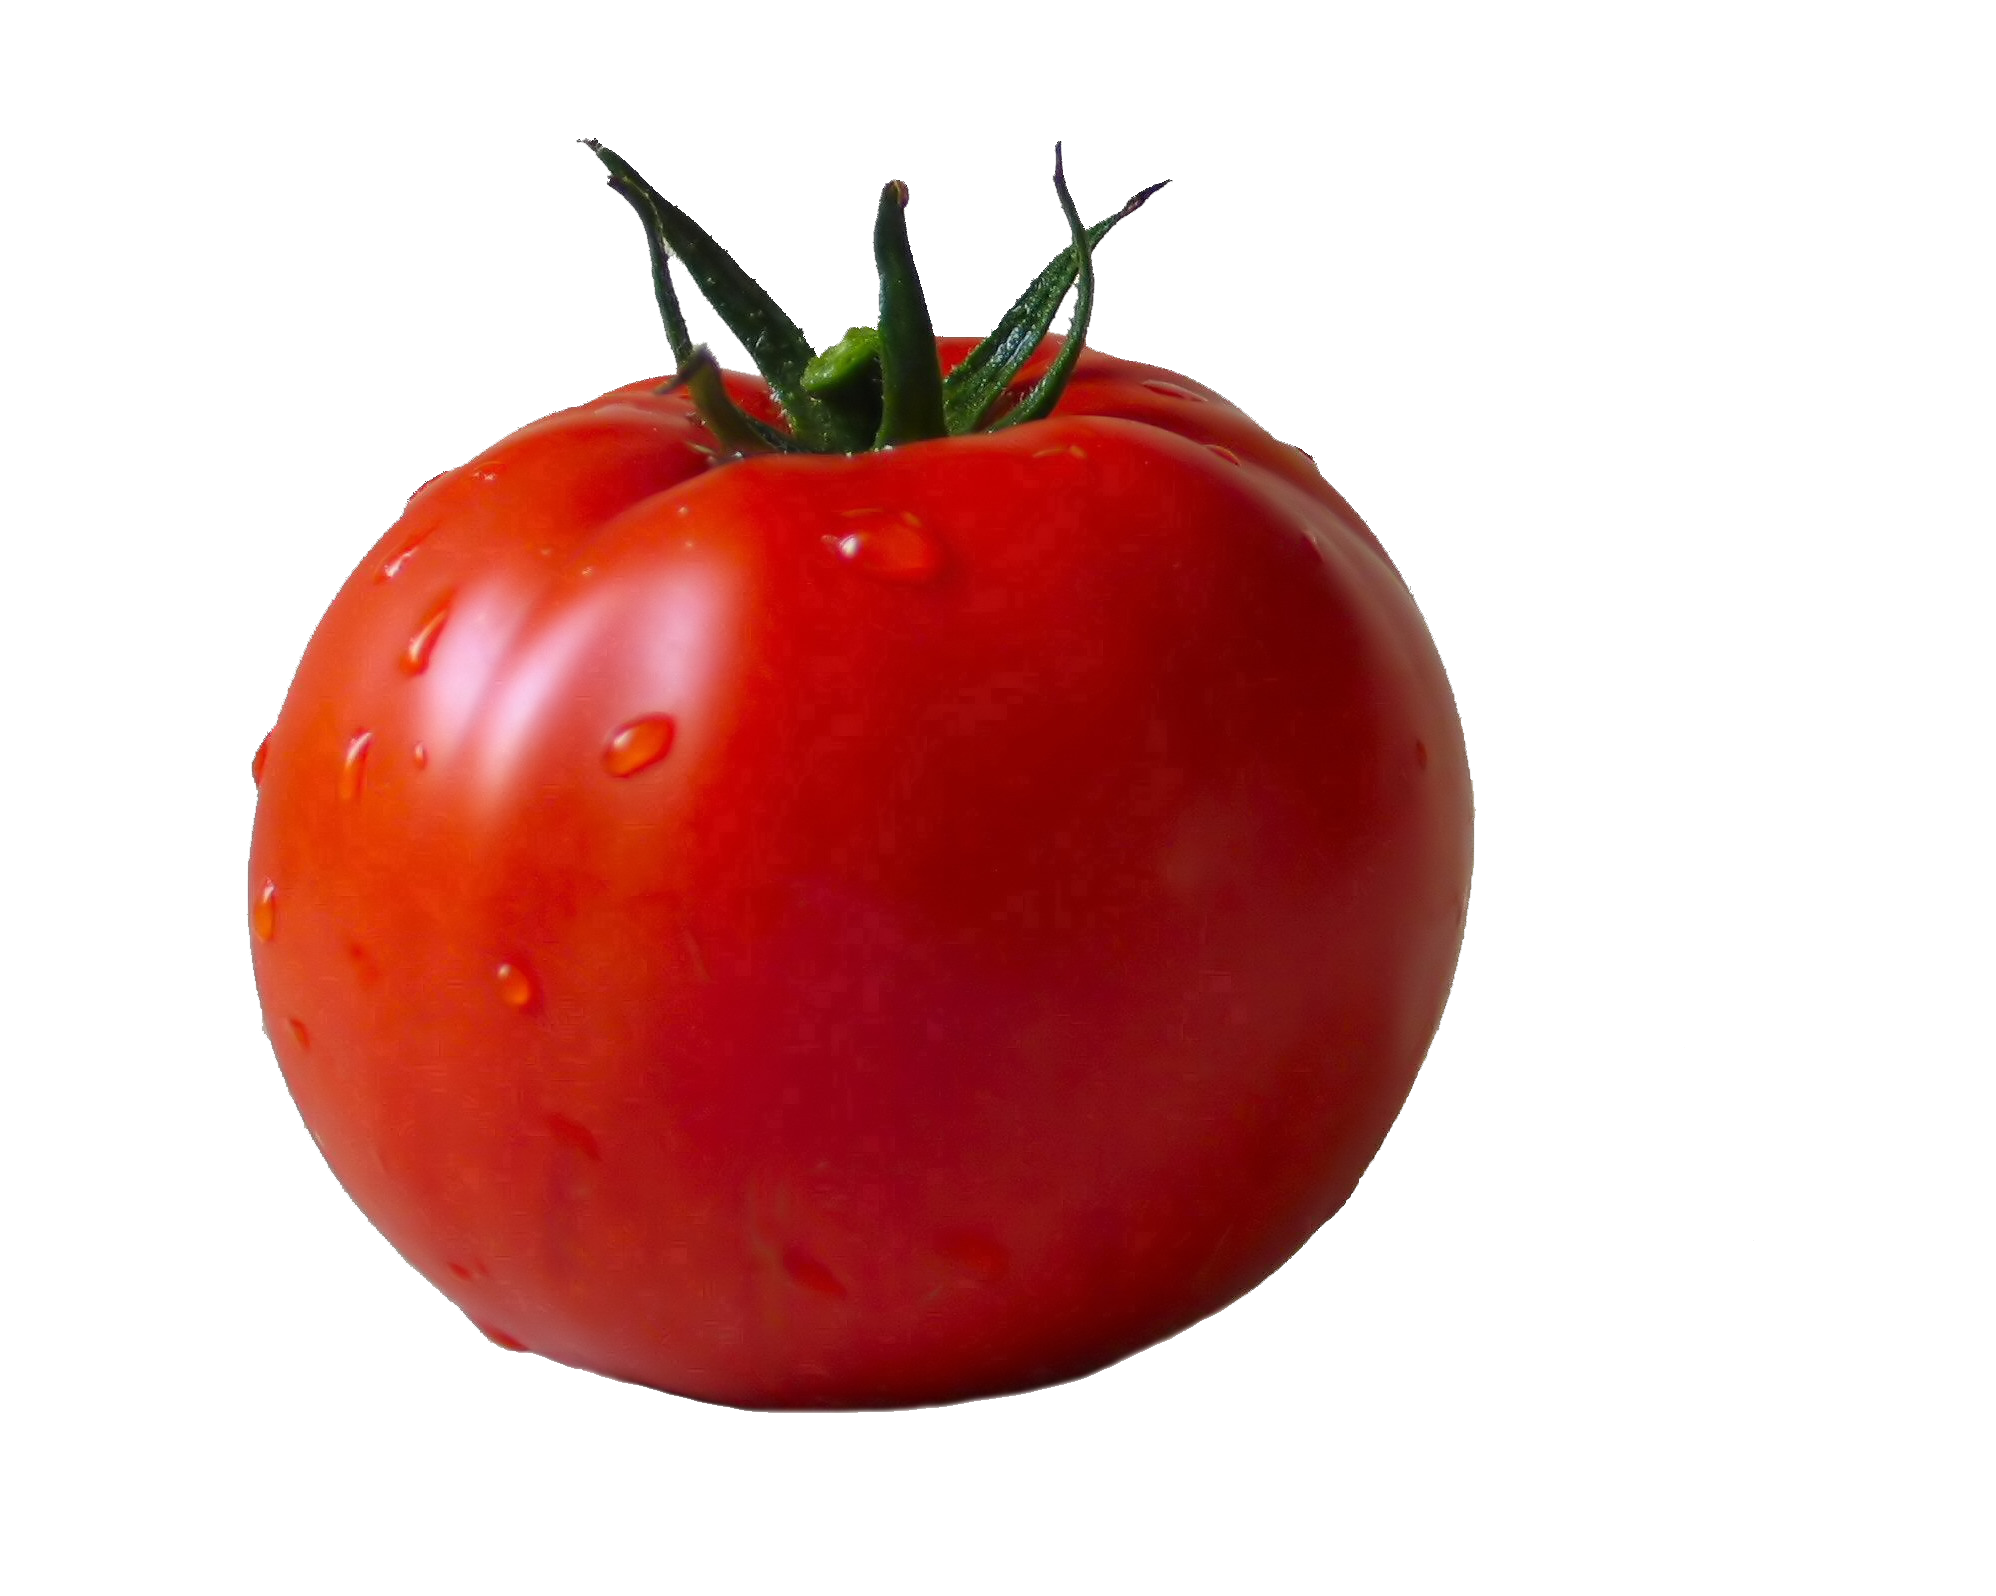 tomatoes clipart fresh